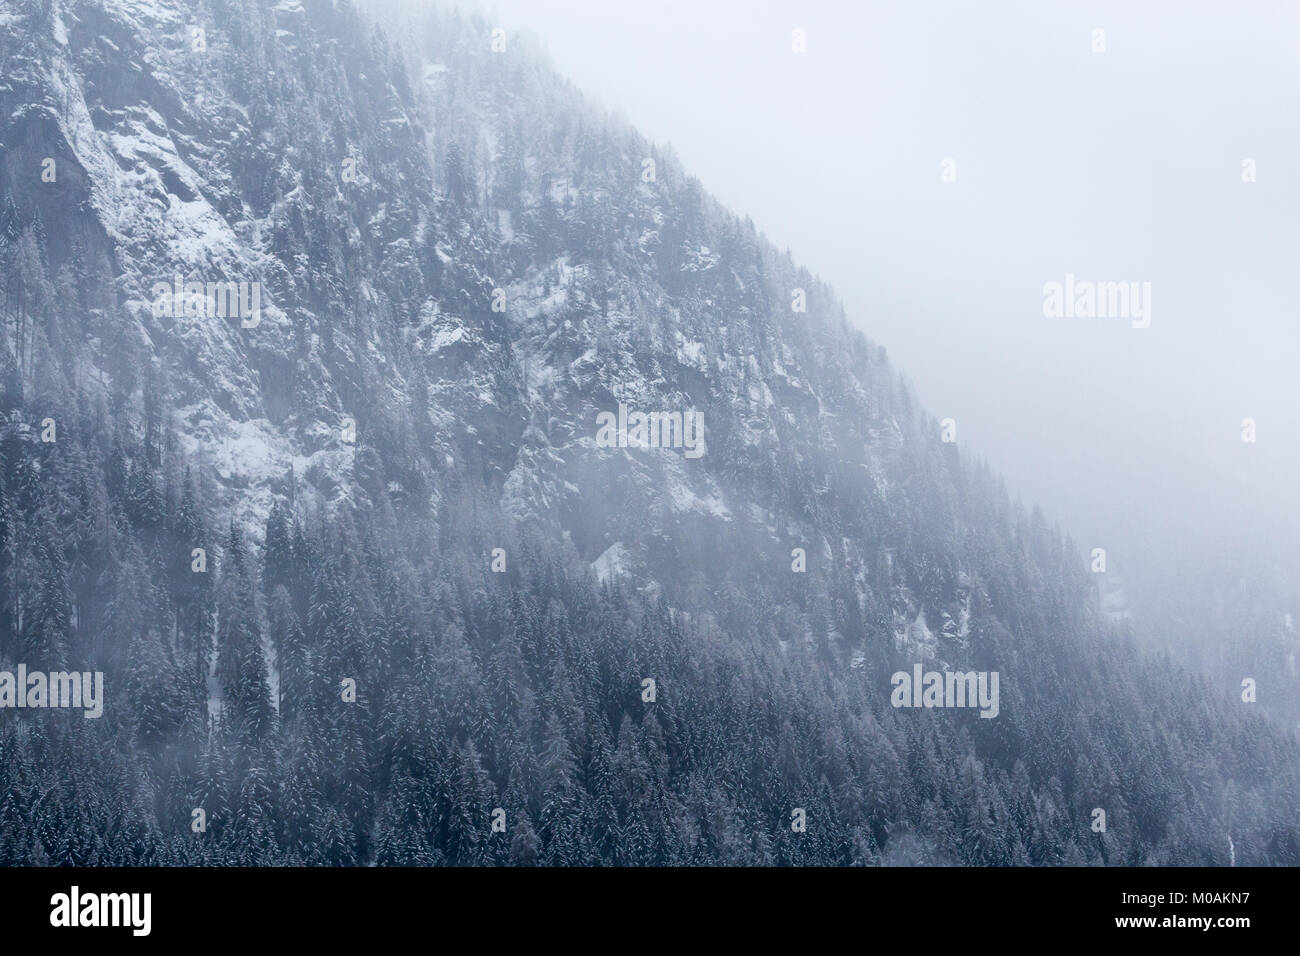 Foggy view of the side of the mountain with snow and snow-tipped conifers clinging to the steep slope. - Stock Image